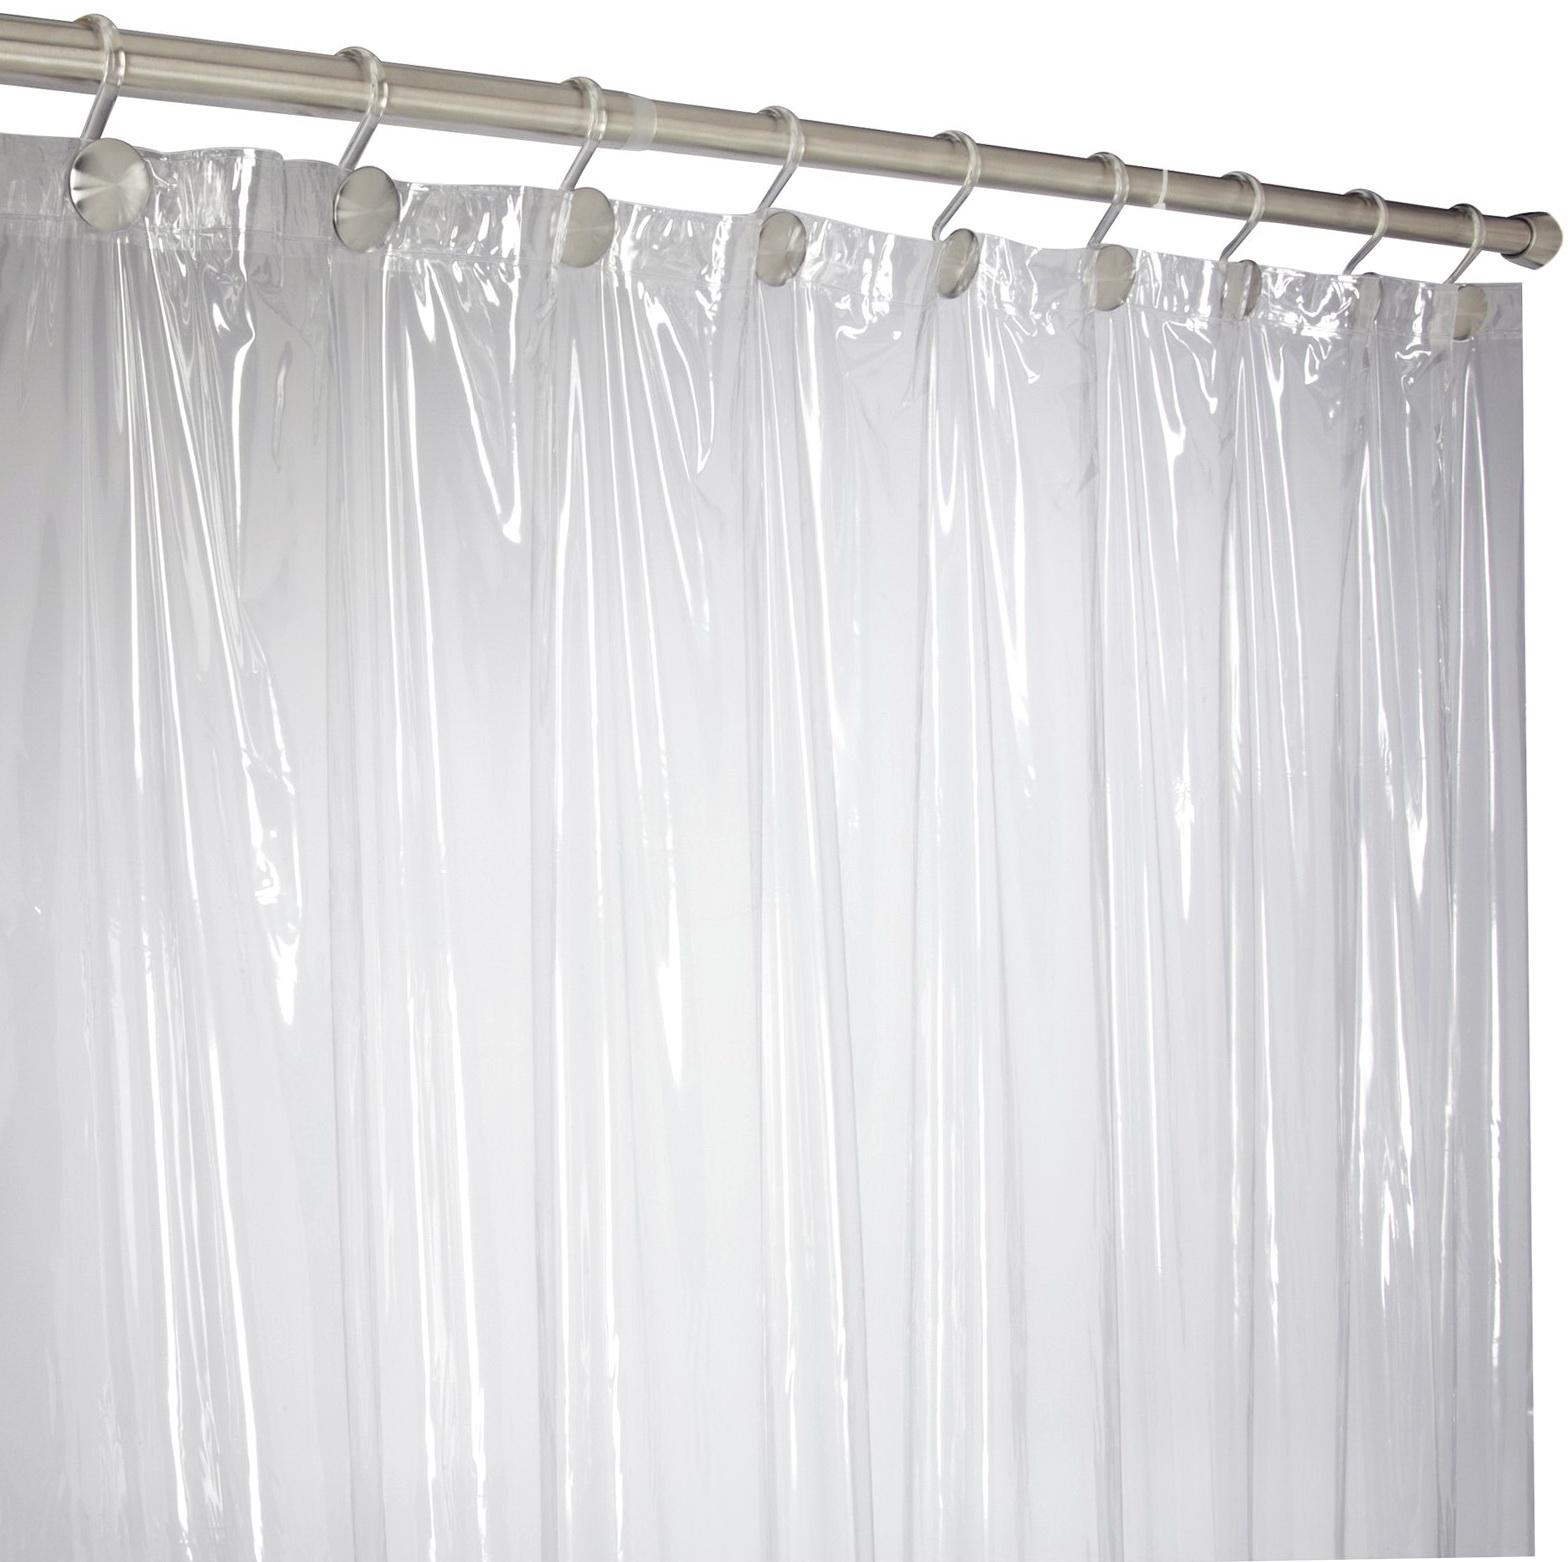 Shower Curtain Liners 75 Inches Long